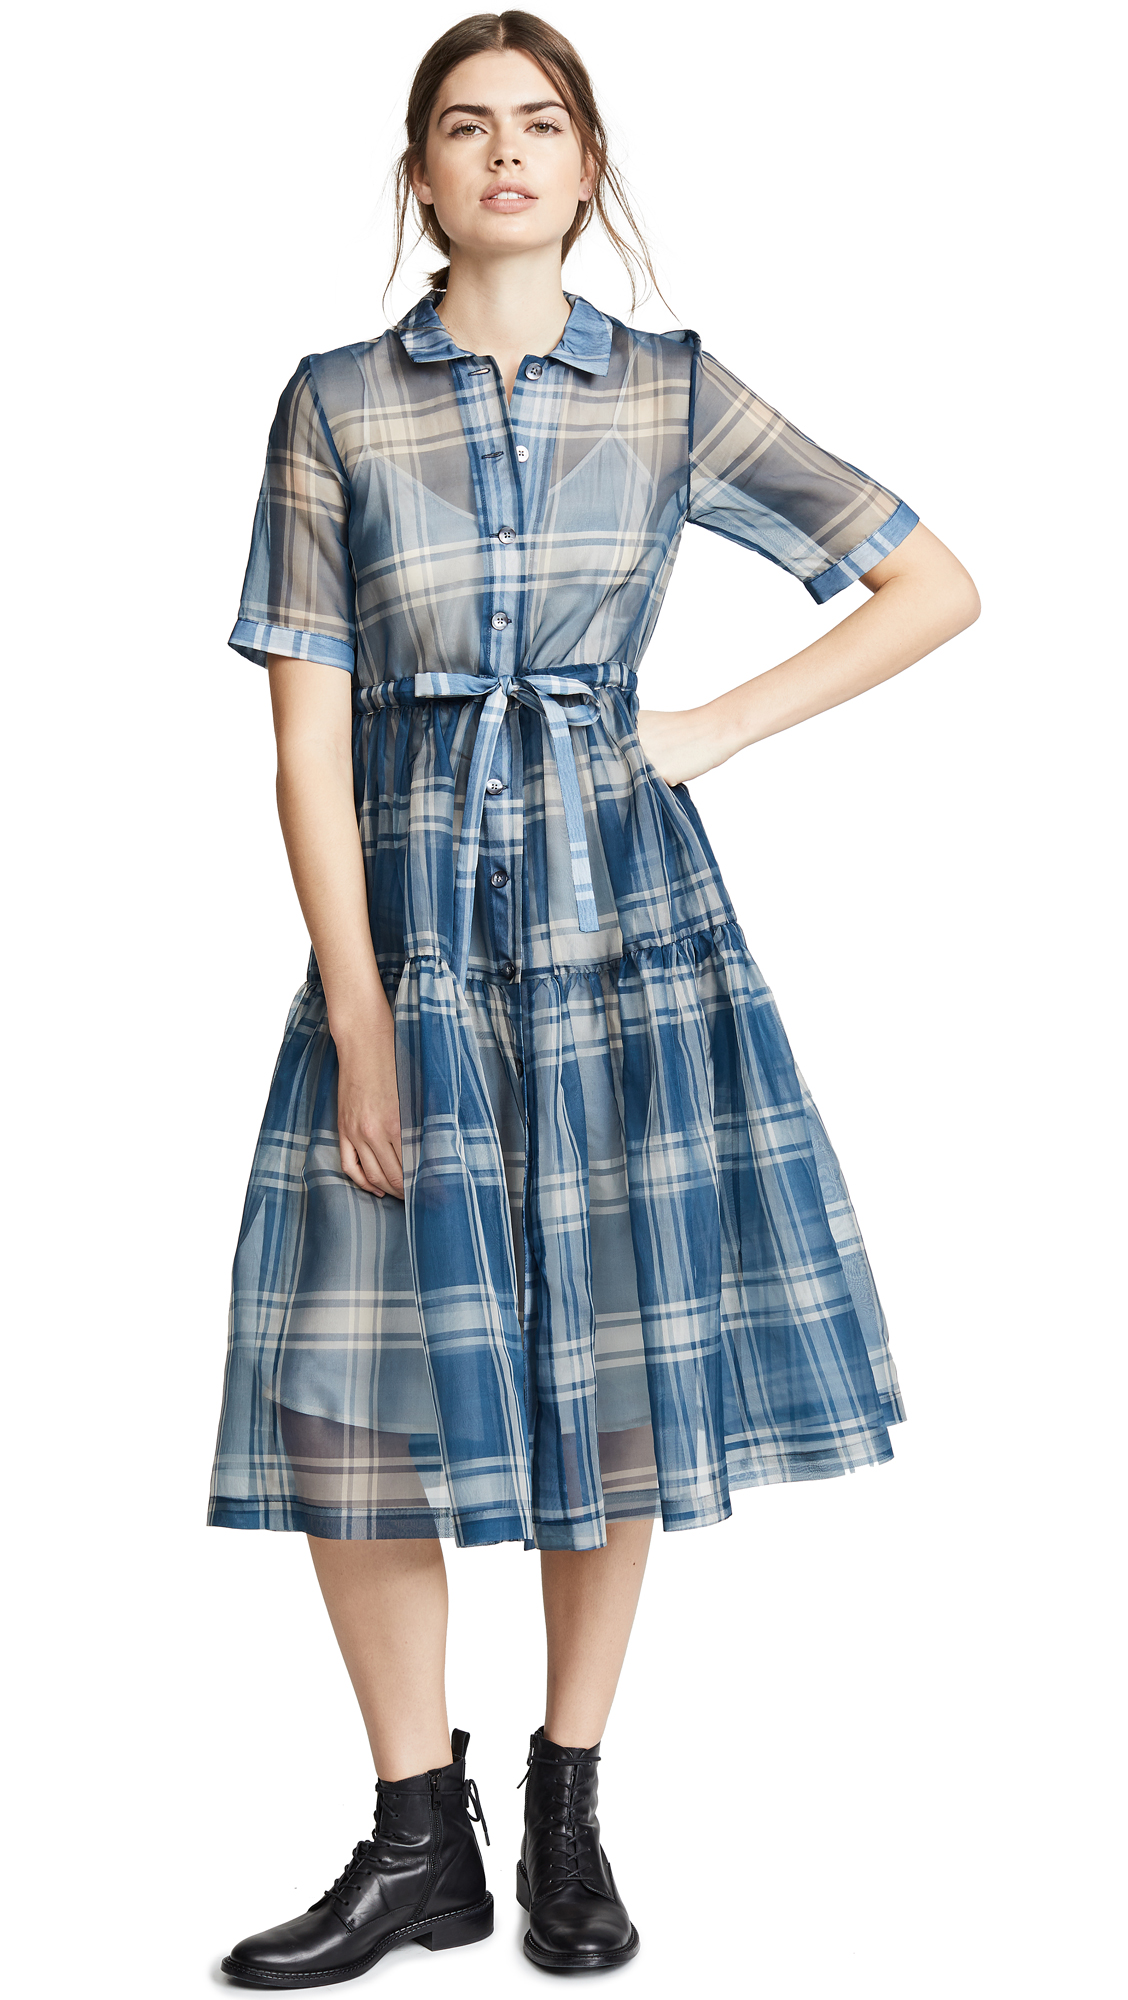 NO. 6 Cather Dress in Blue/White Plaid Organza